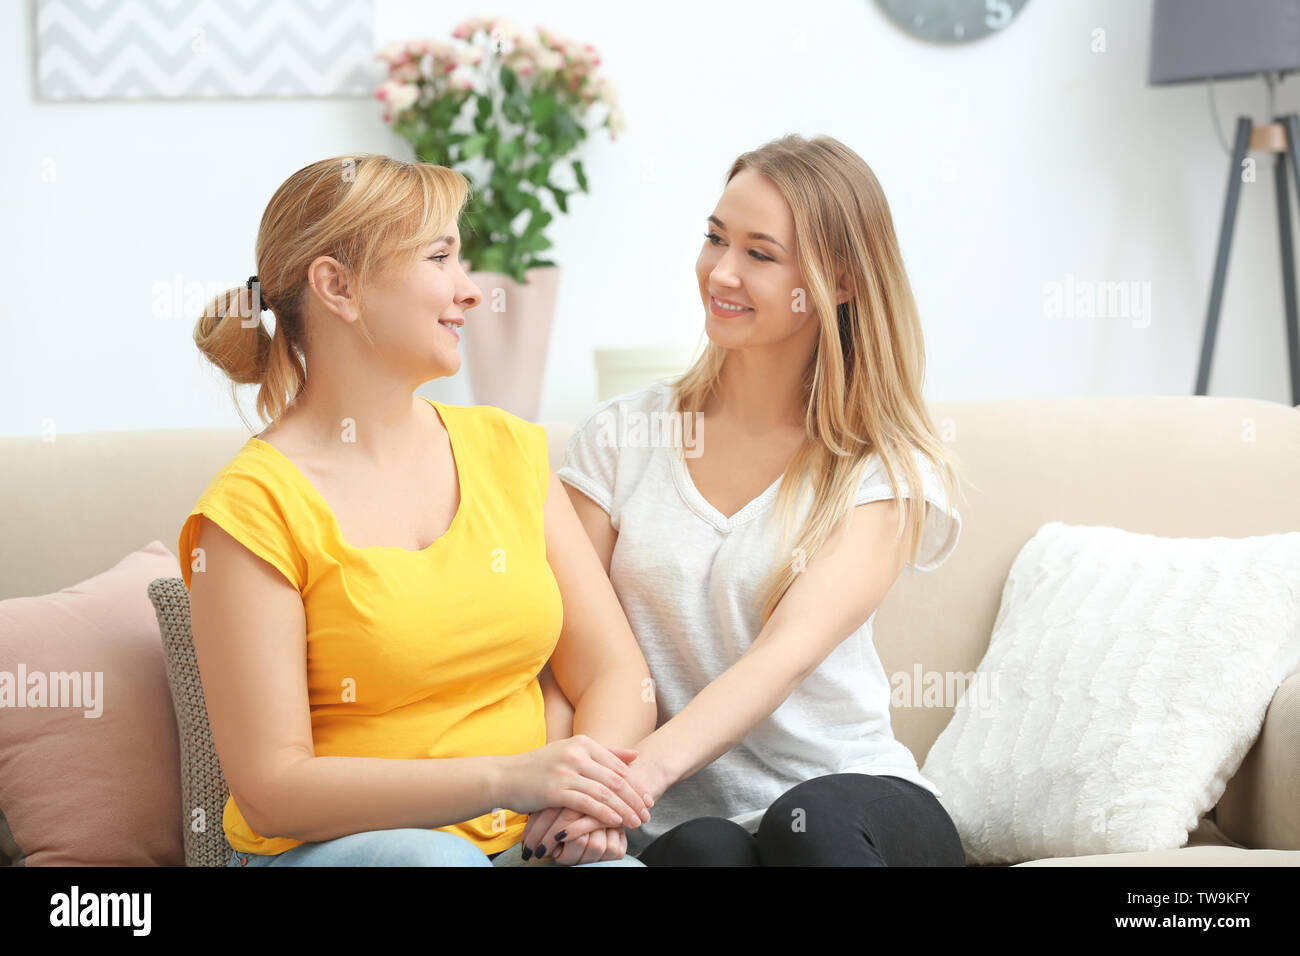 Young woman spending time with her mother at home - Stock Image